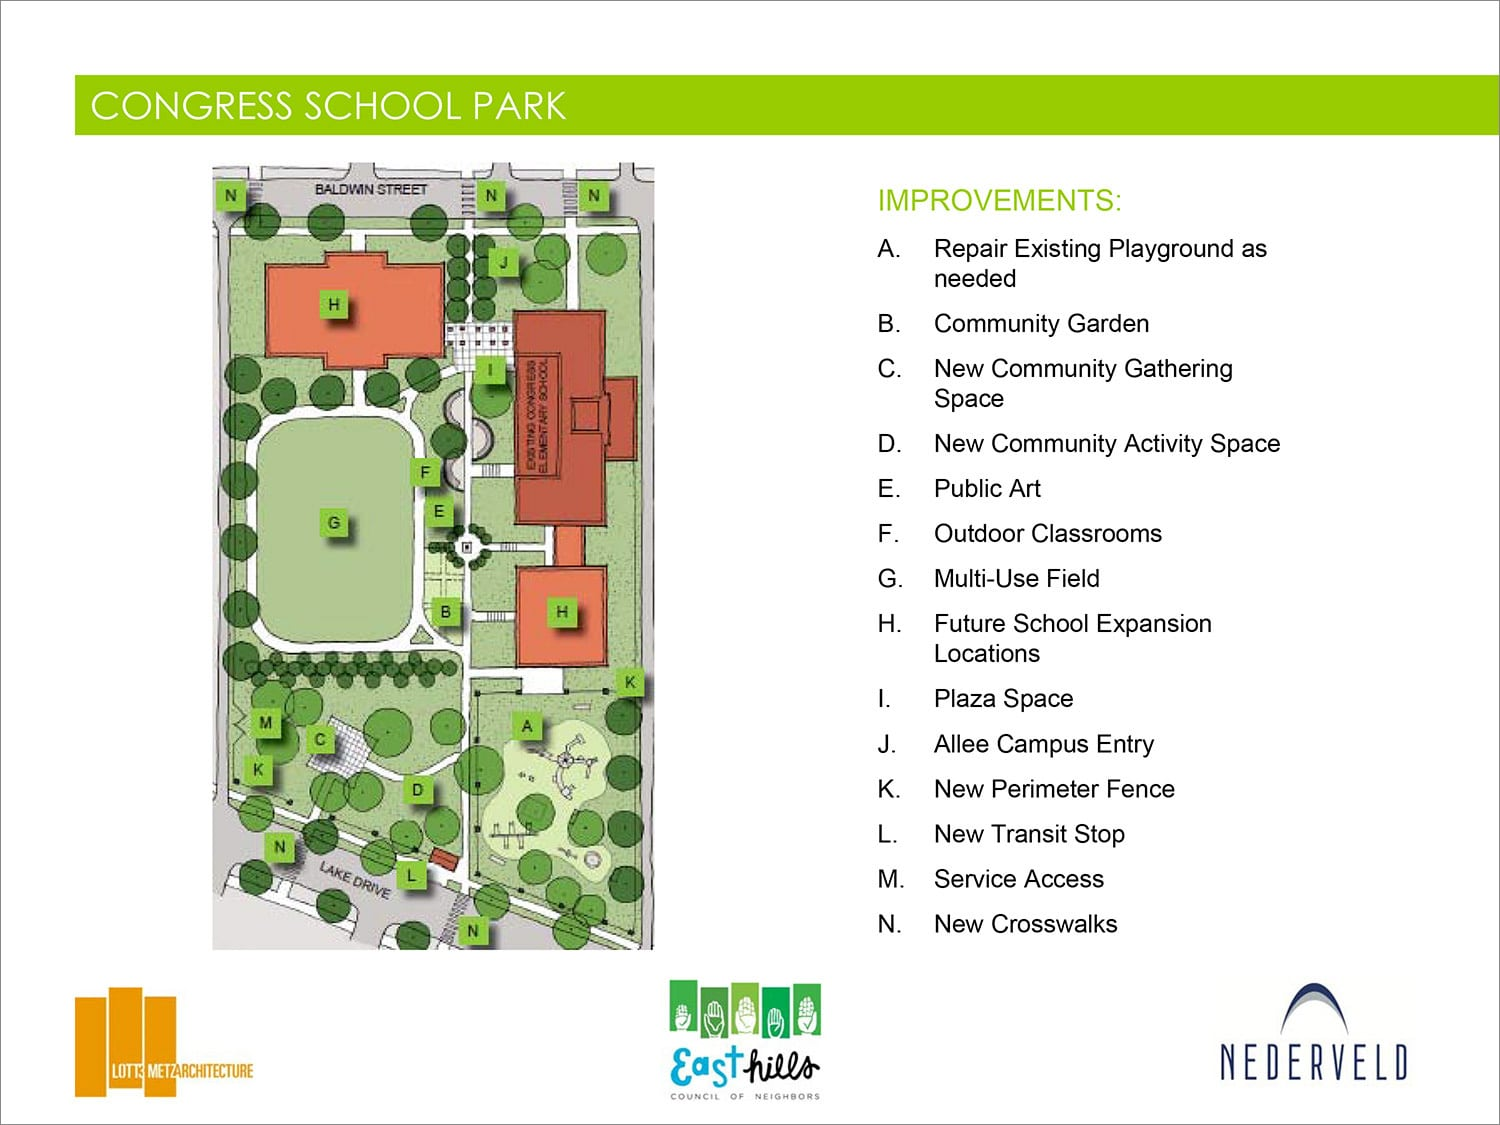 ehcn_congress-school-park-min.jpg